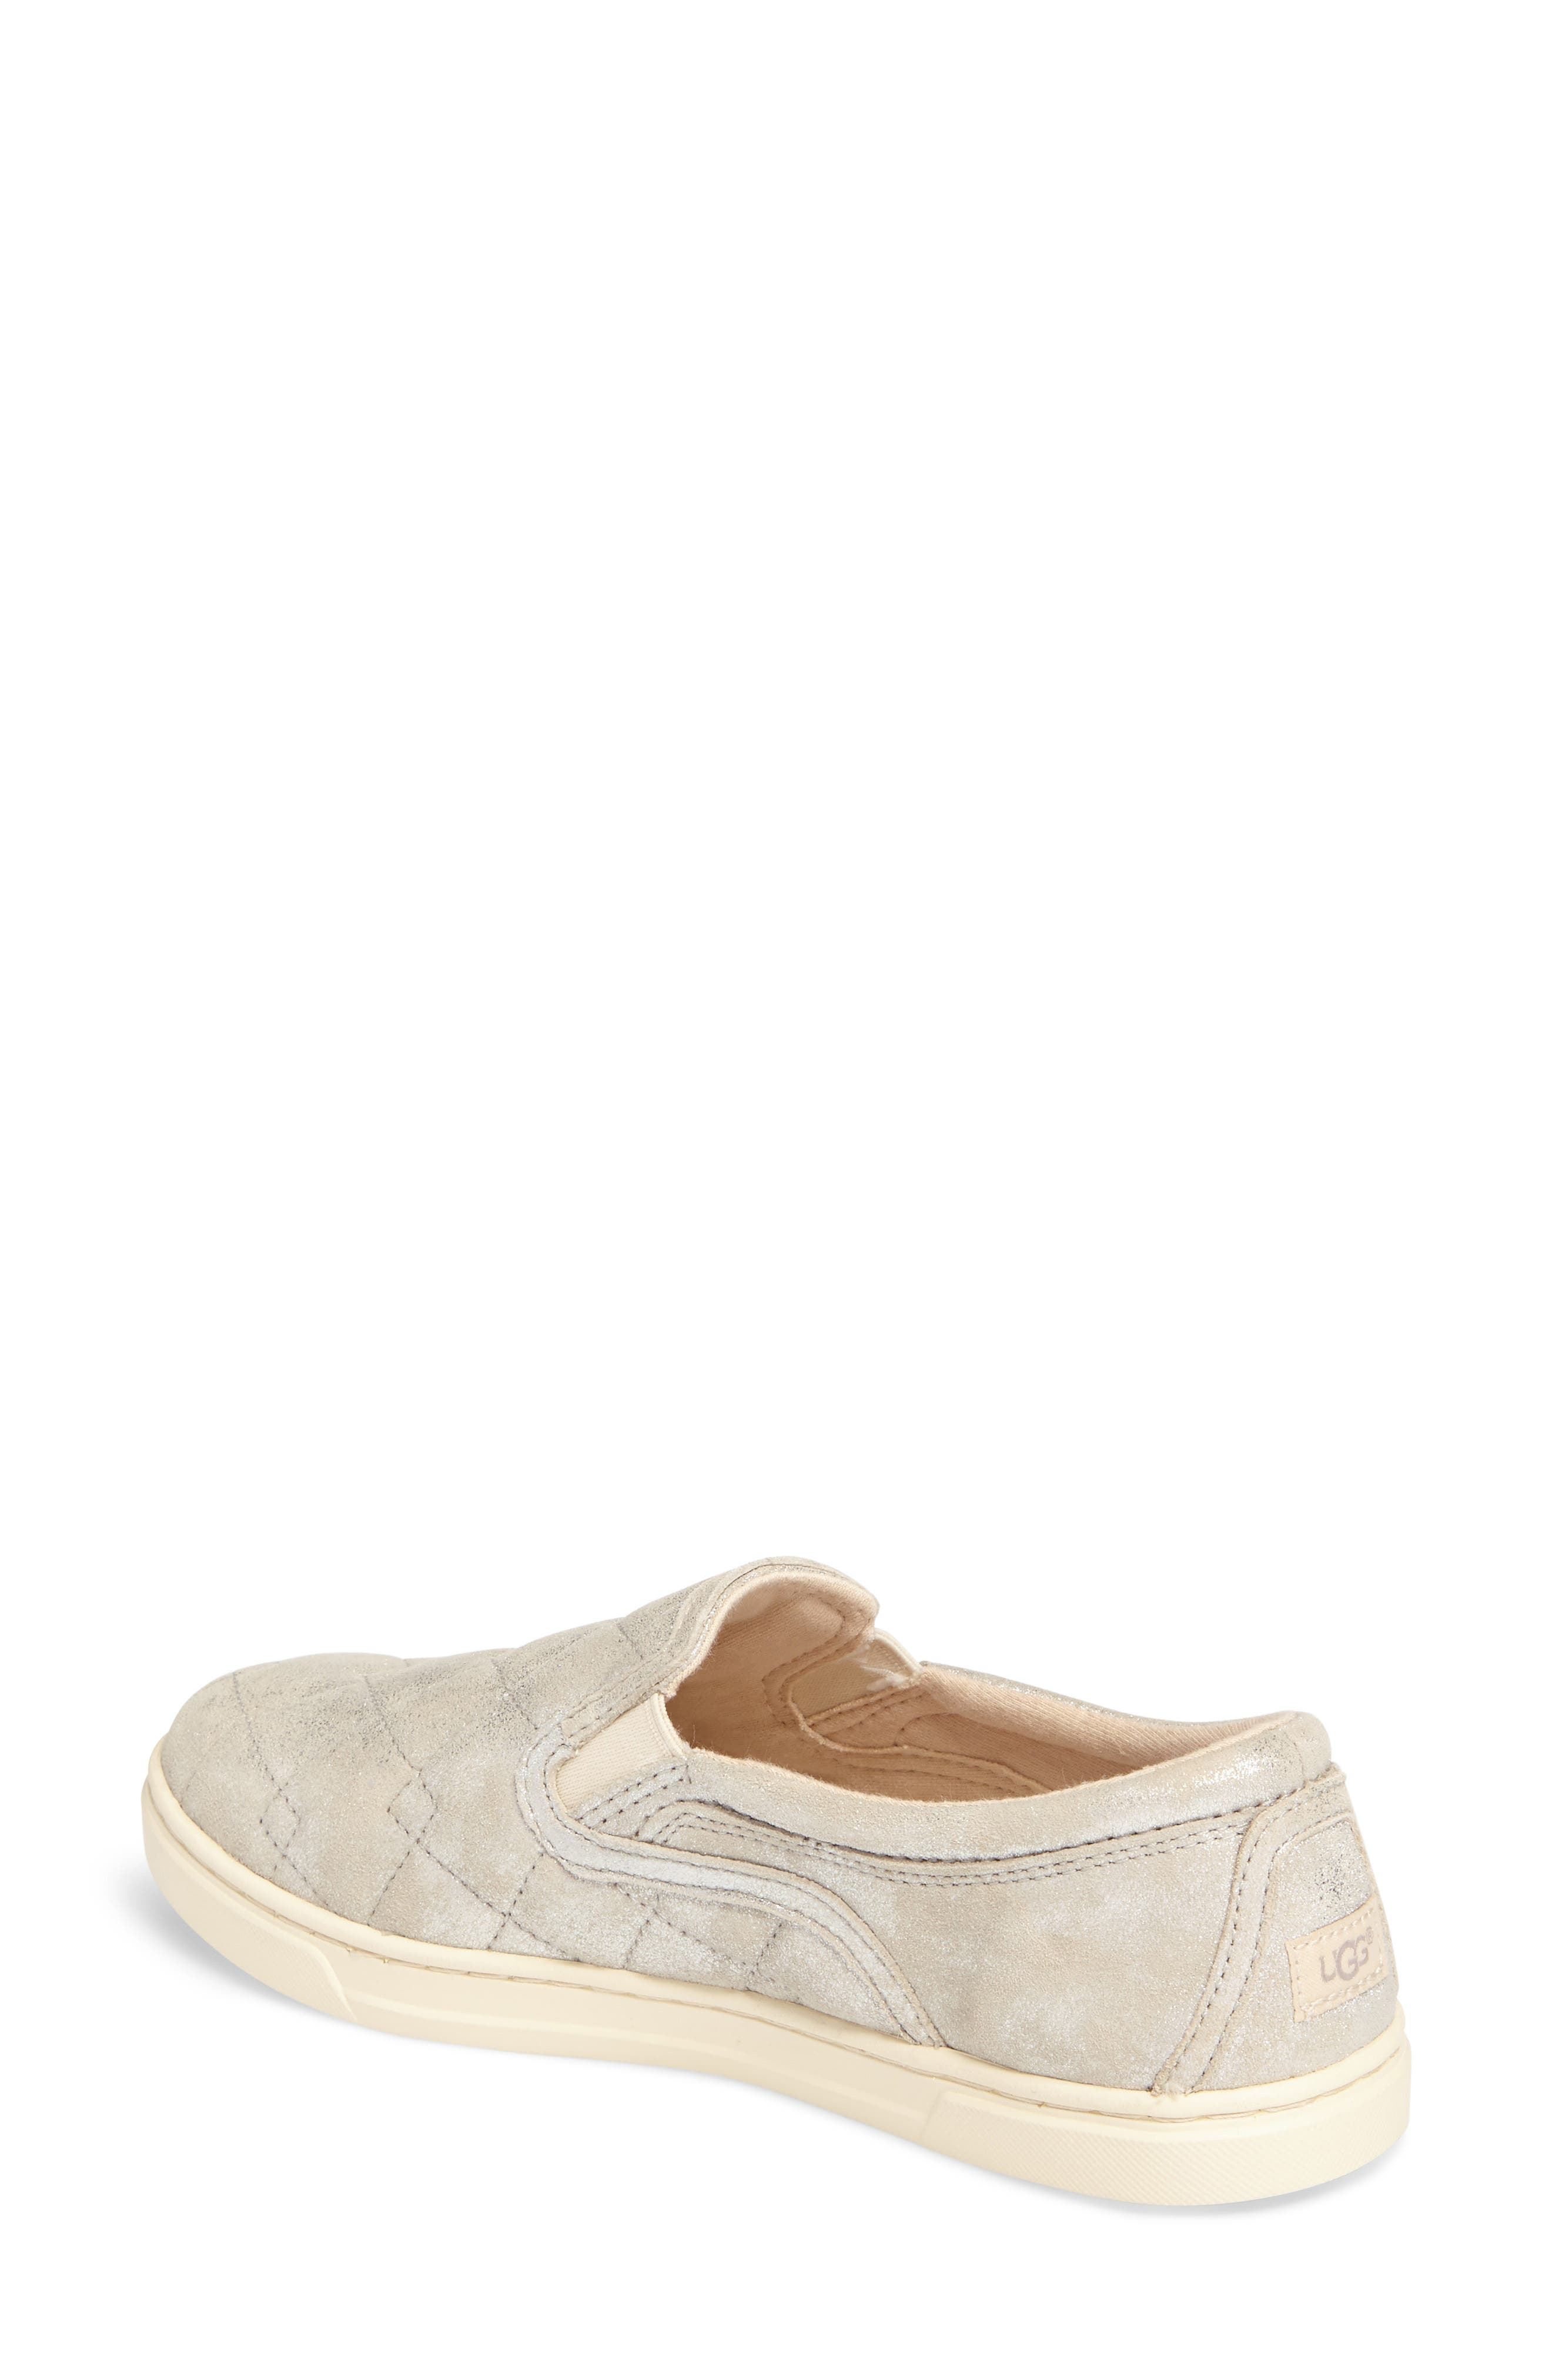 Fierce Stardust Quilted Slip-On Sneaker,                             Alternate thumbnail 2, color,                             040